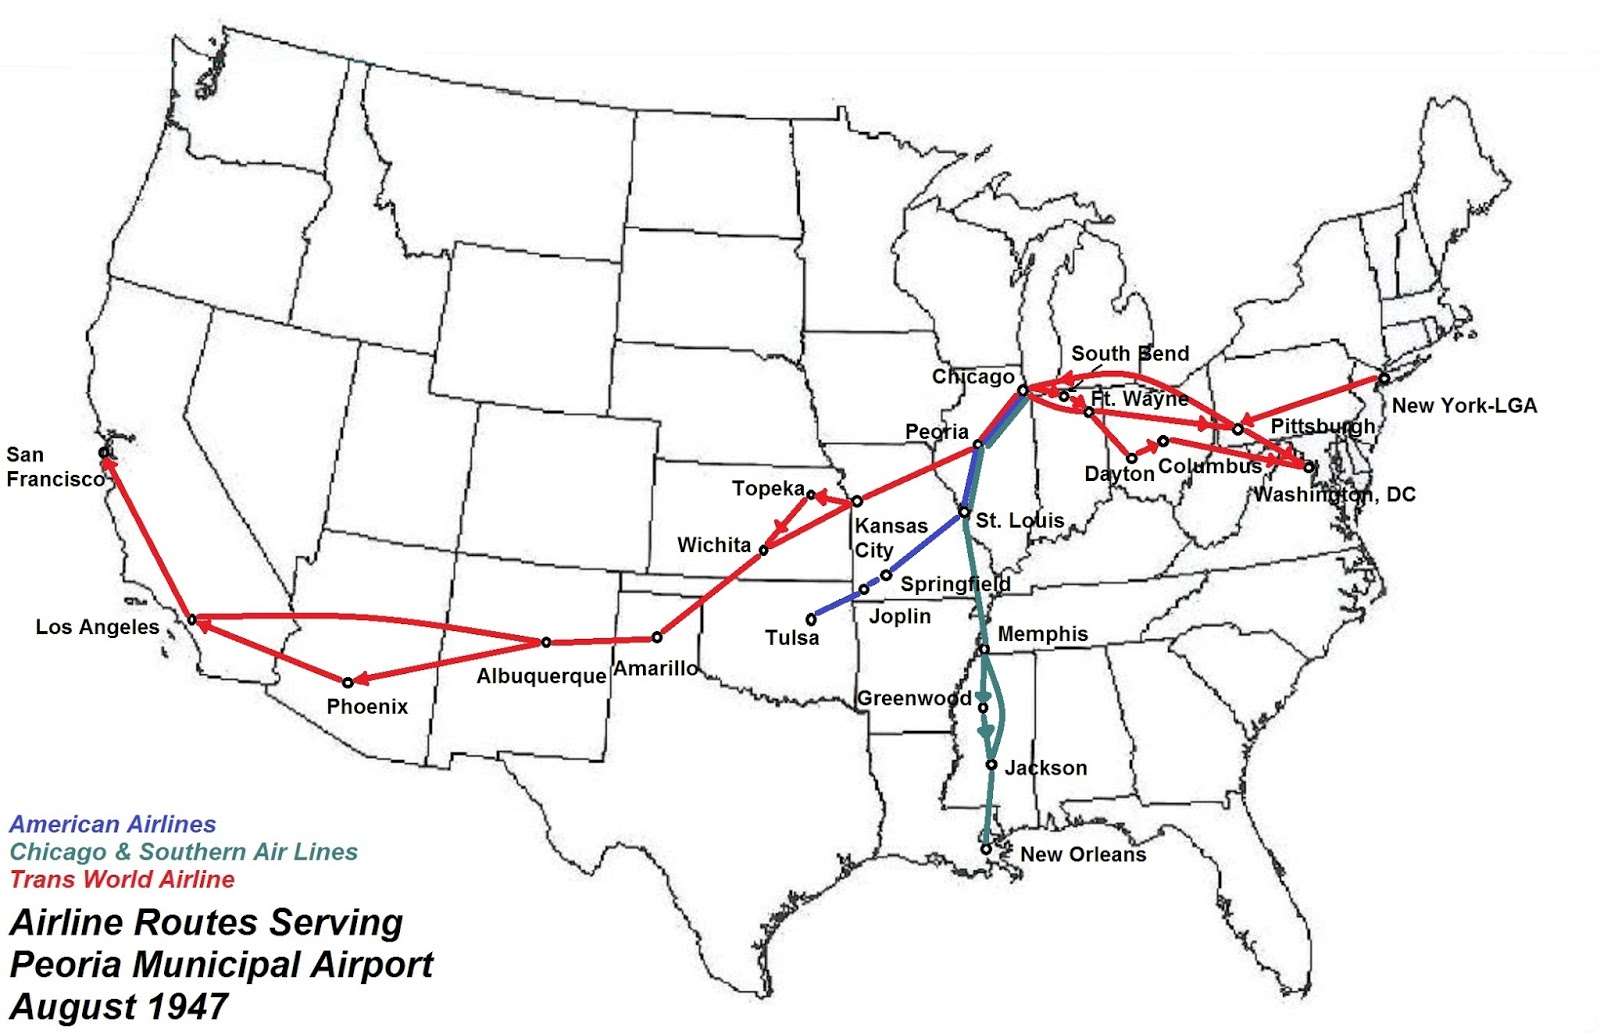 routes many cities shown are on one way routings but peoria travelers had same plane service links with los angeles albuquerque amarillo wichita